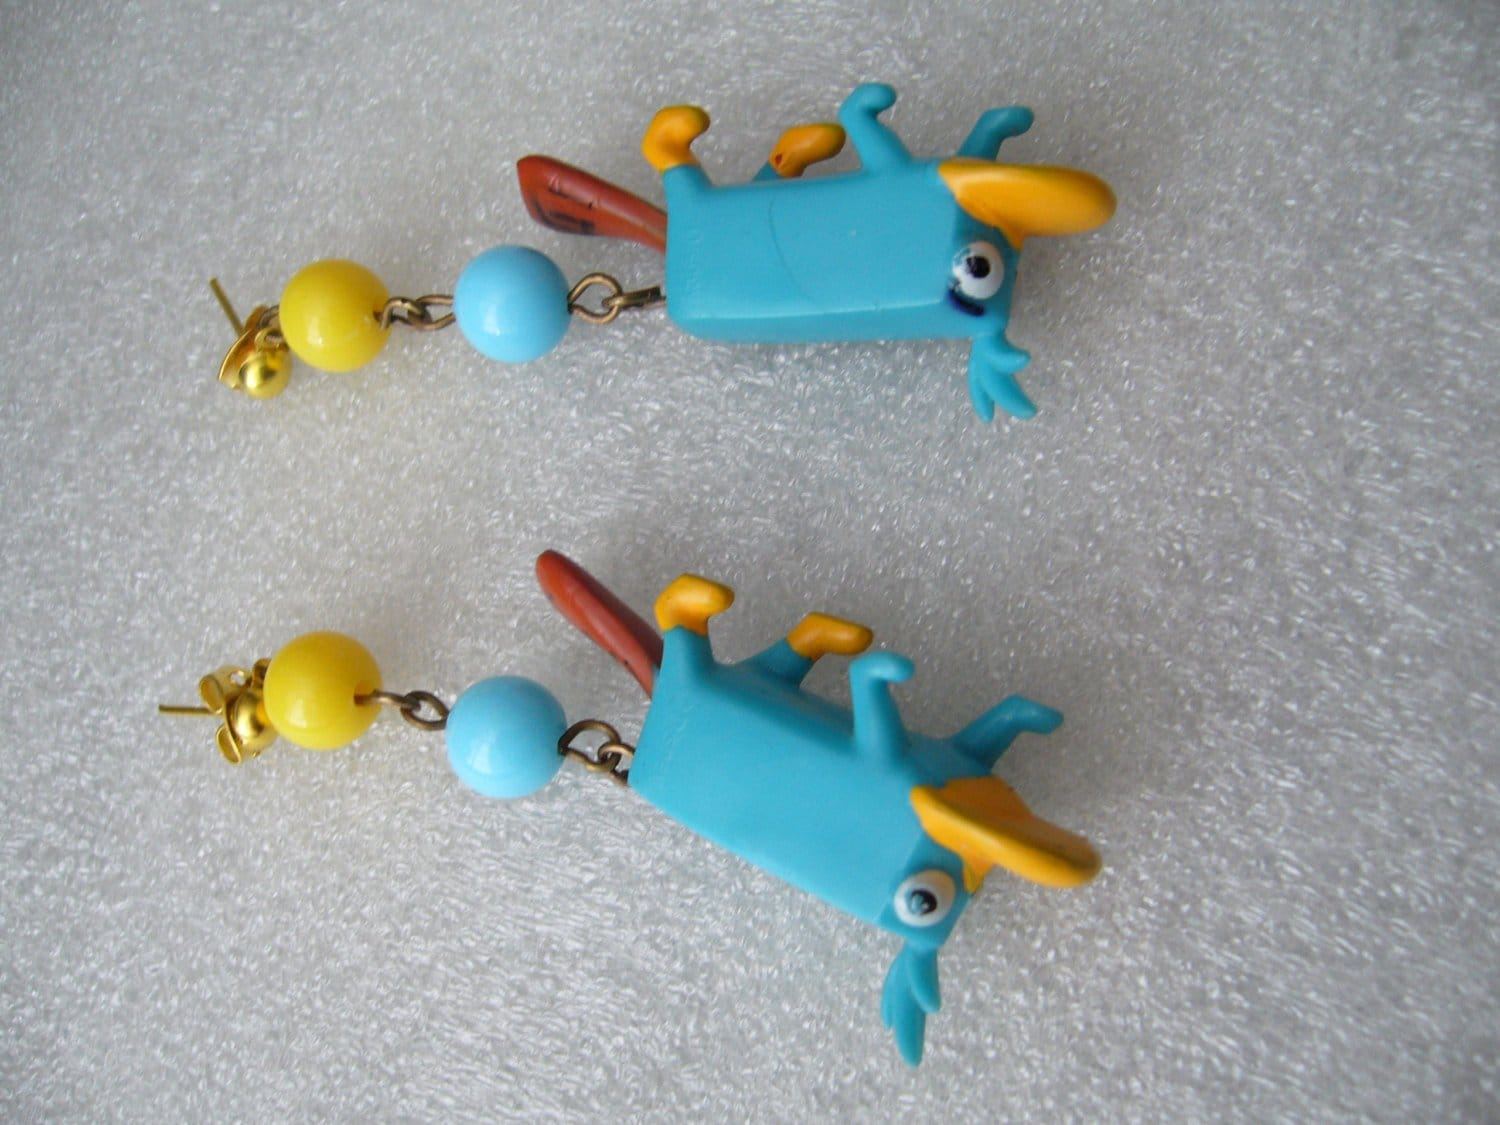 Vintage style funny plastic  piercing earrings with blue parrots